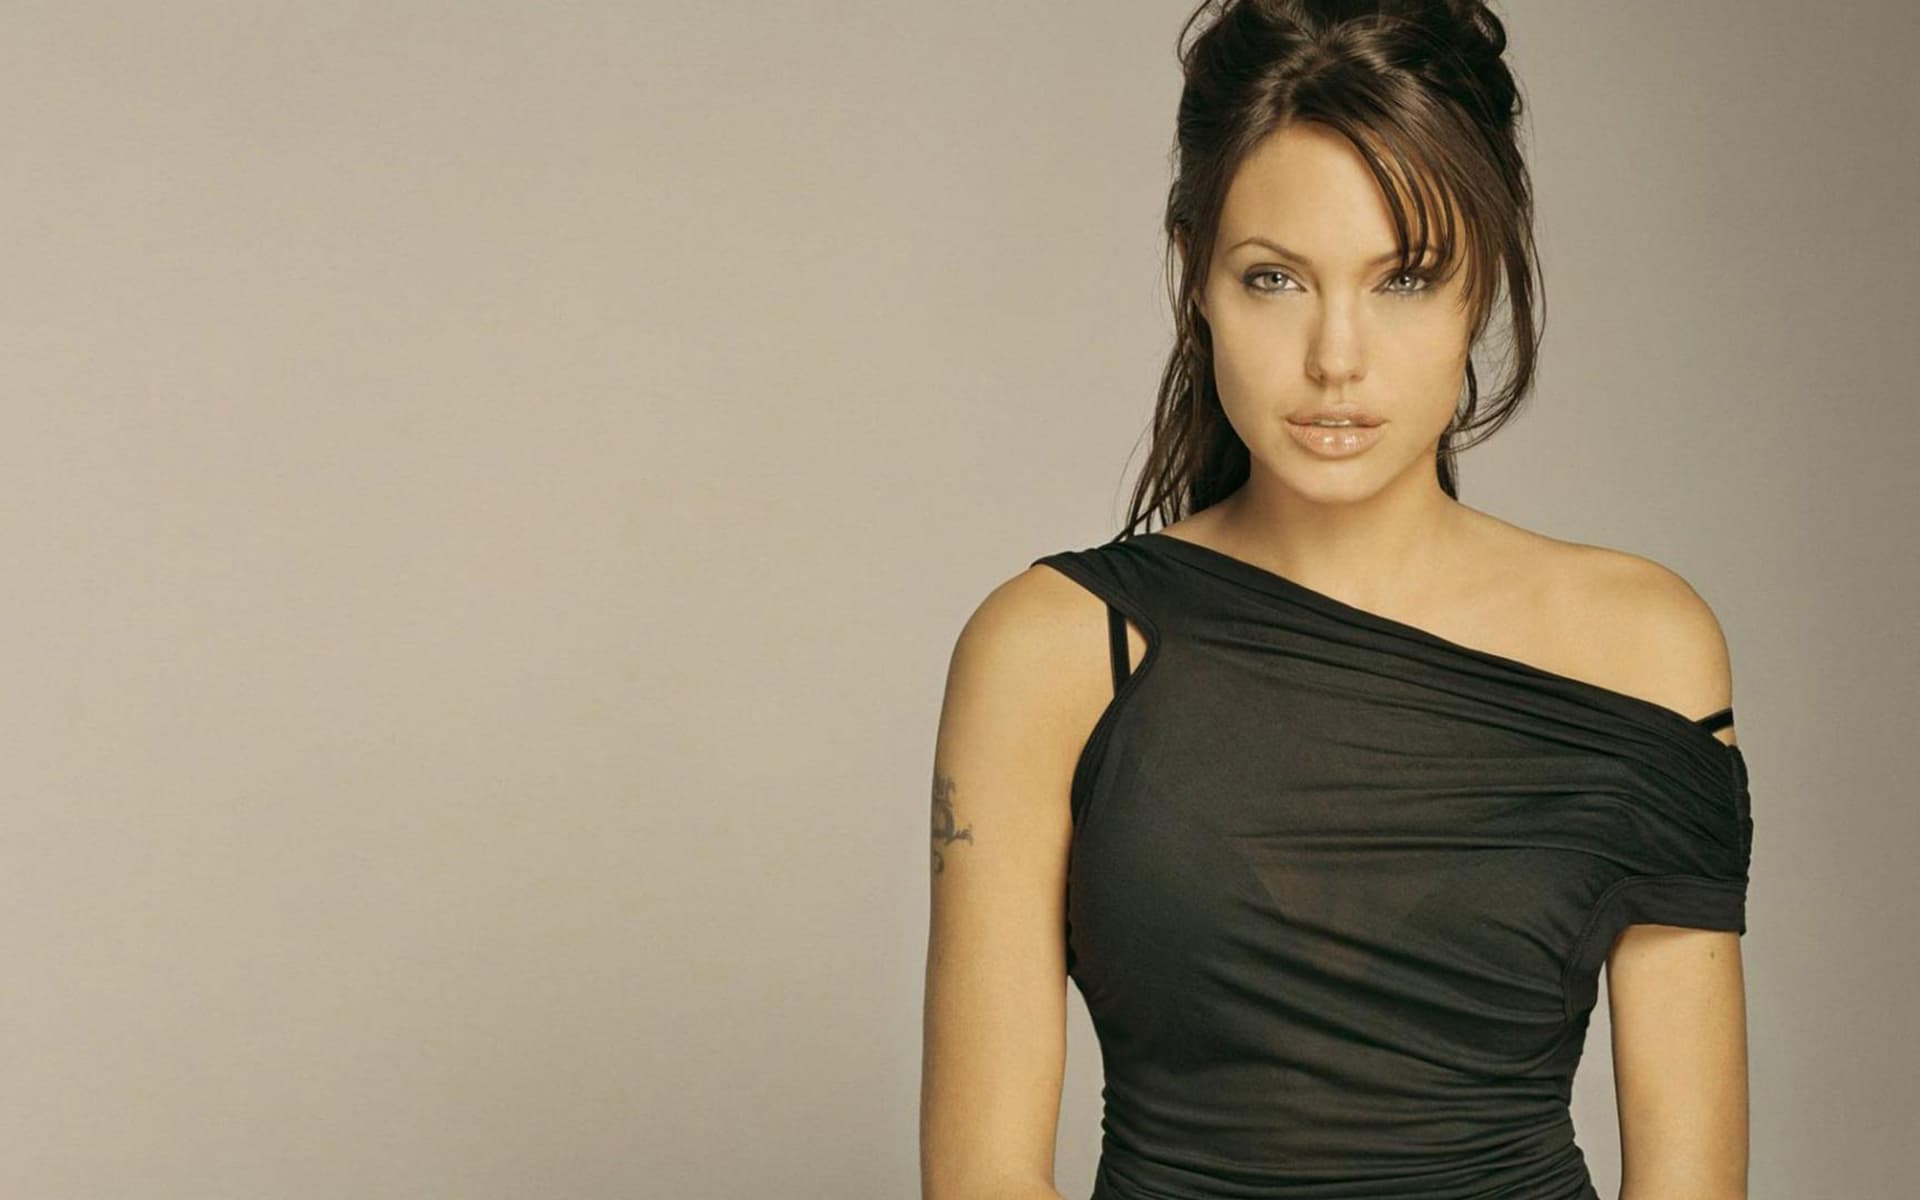 Angelina Jolie Wallpaper 1080p High Definition Hd Image